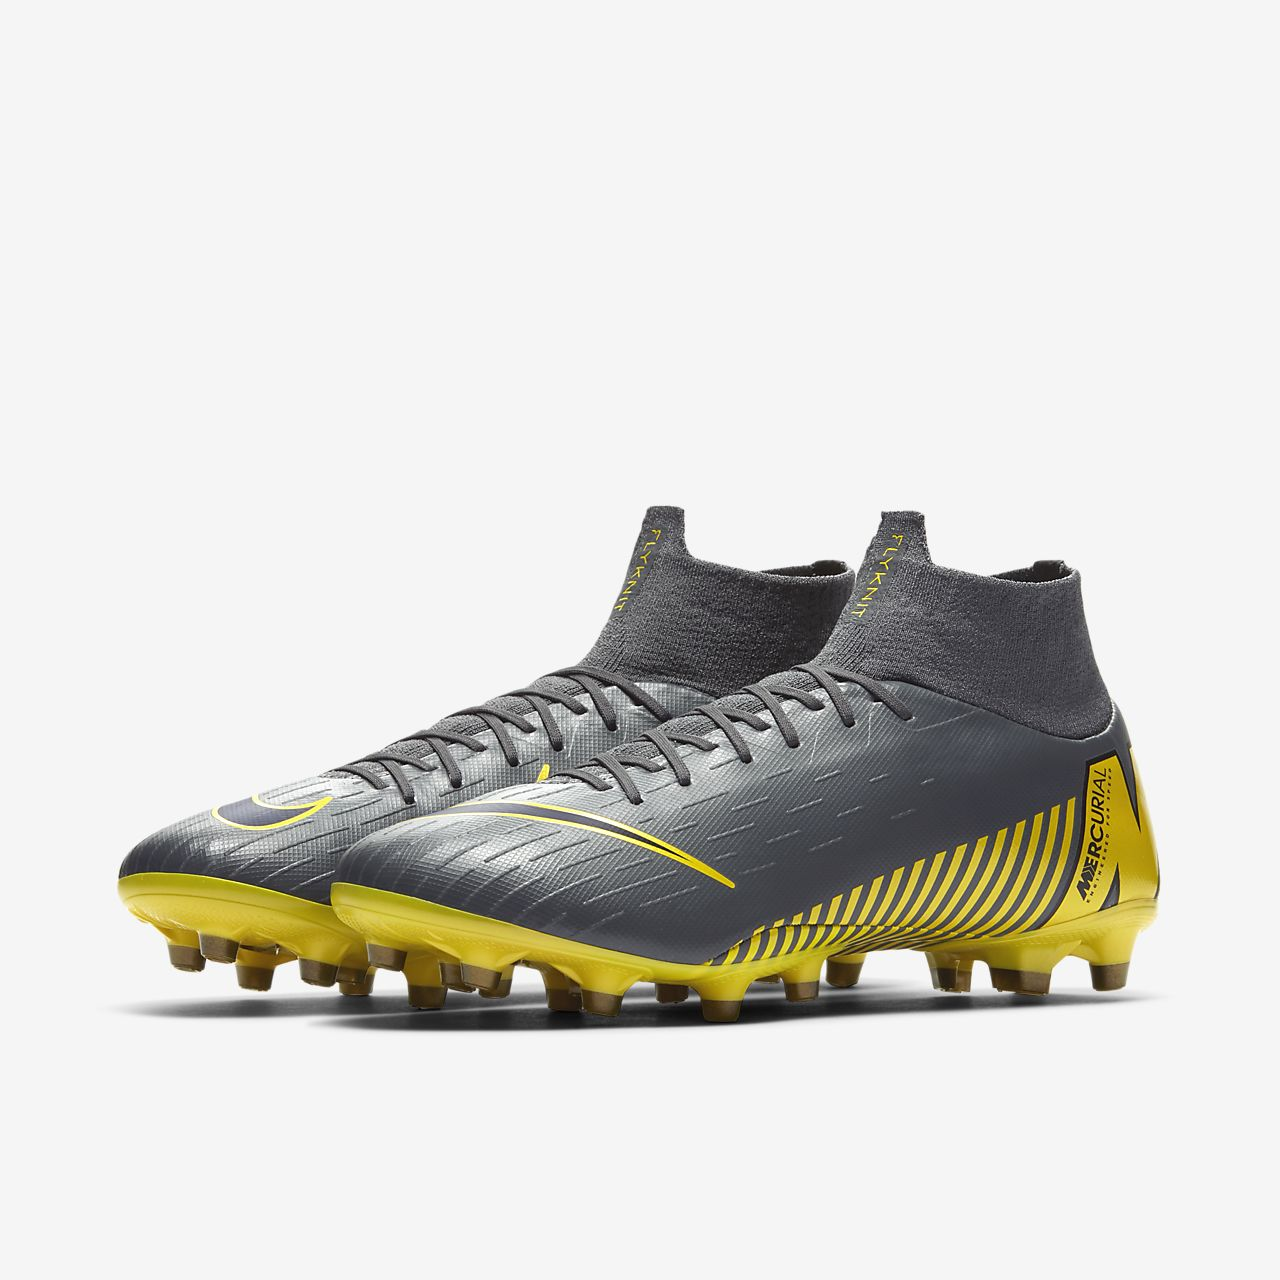 2ee5fc6cbcb552 ... Nike Mercurial Superfly VI Pro AG-PRO Artificial-Grass Football Boot